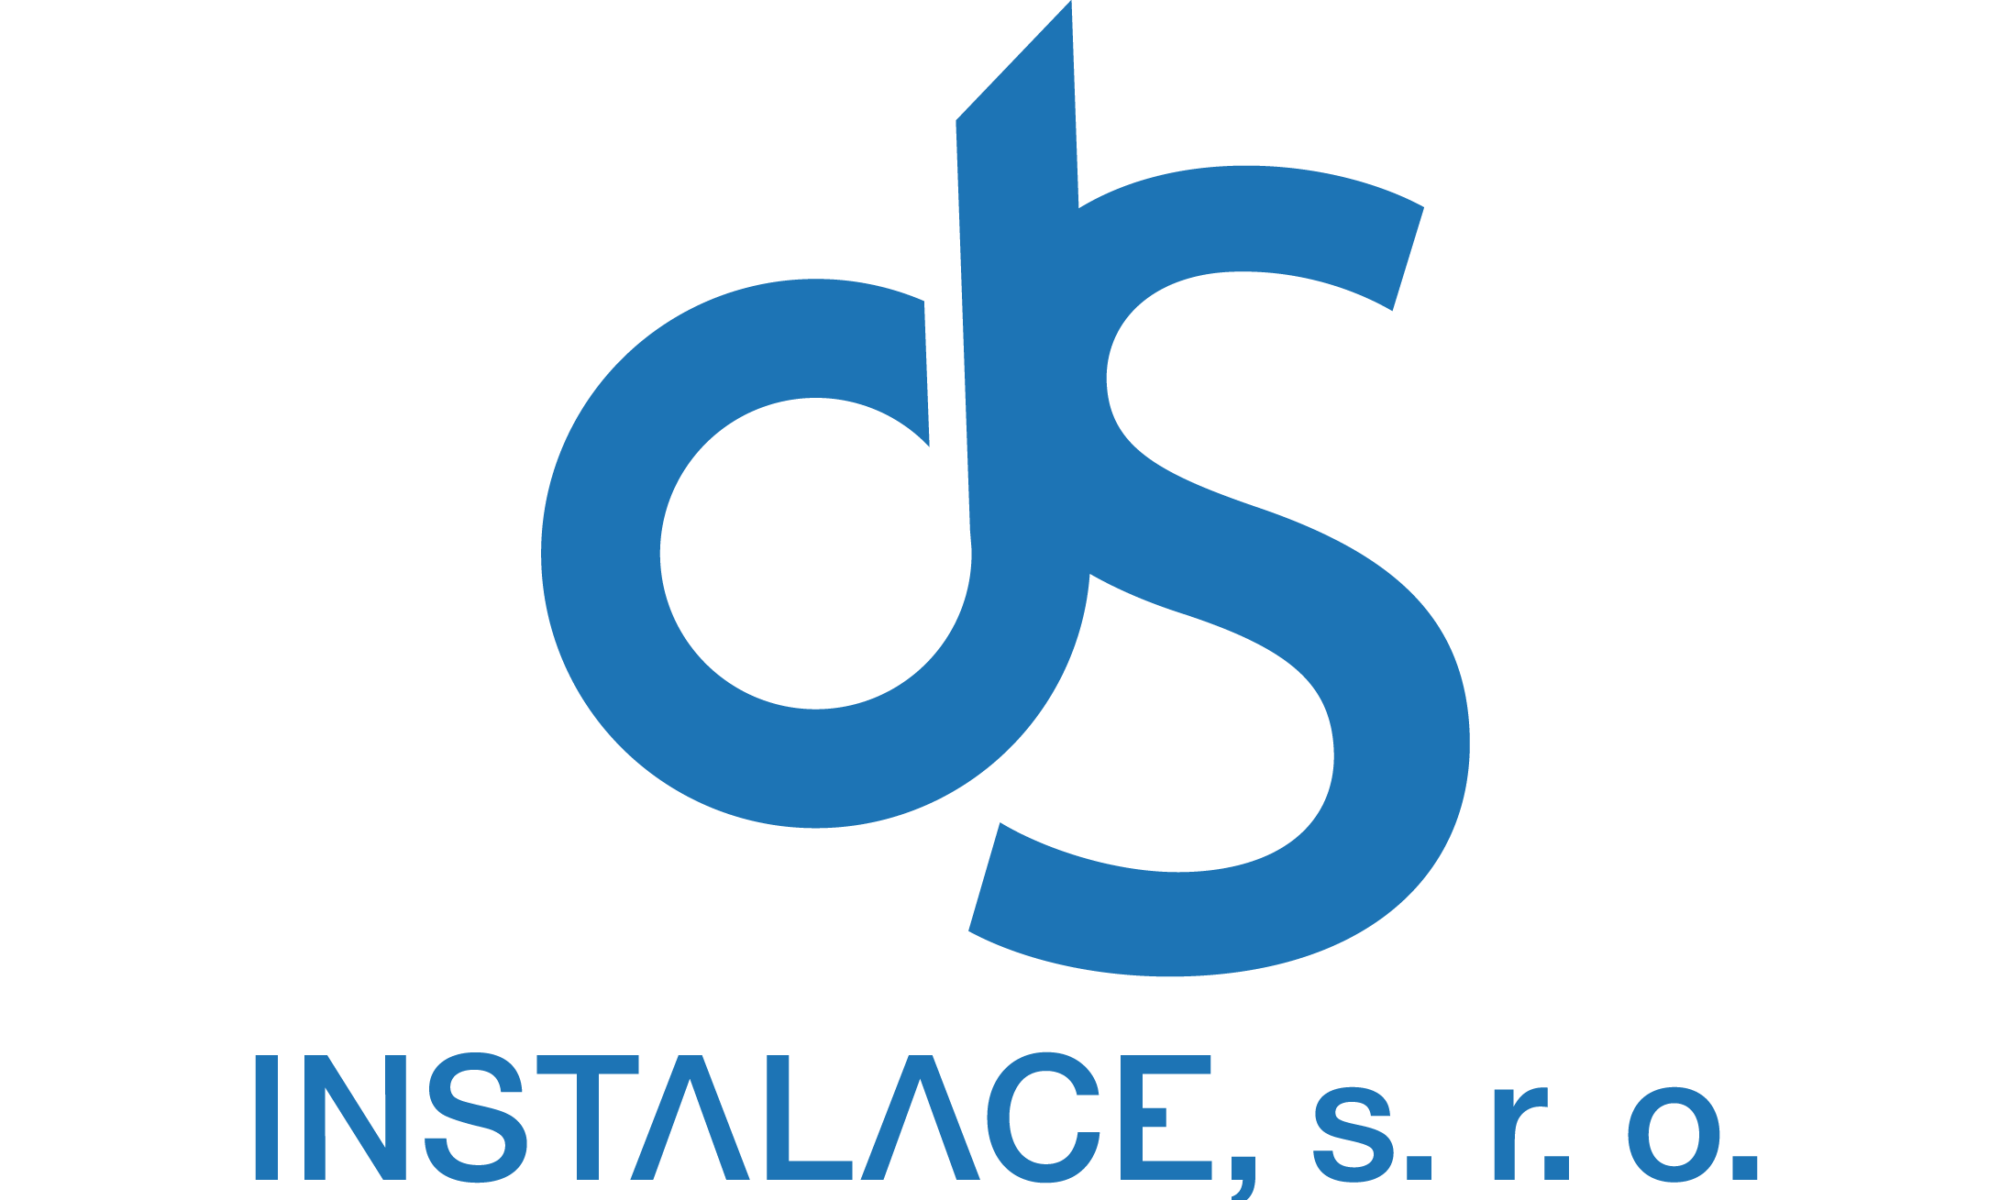 DS Instalace, s.r.o.